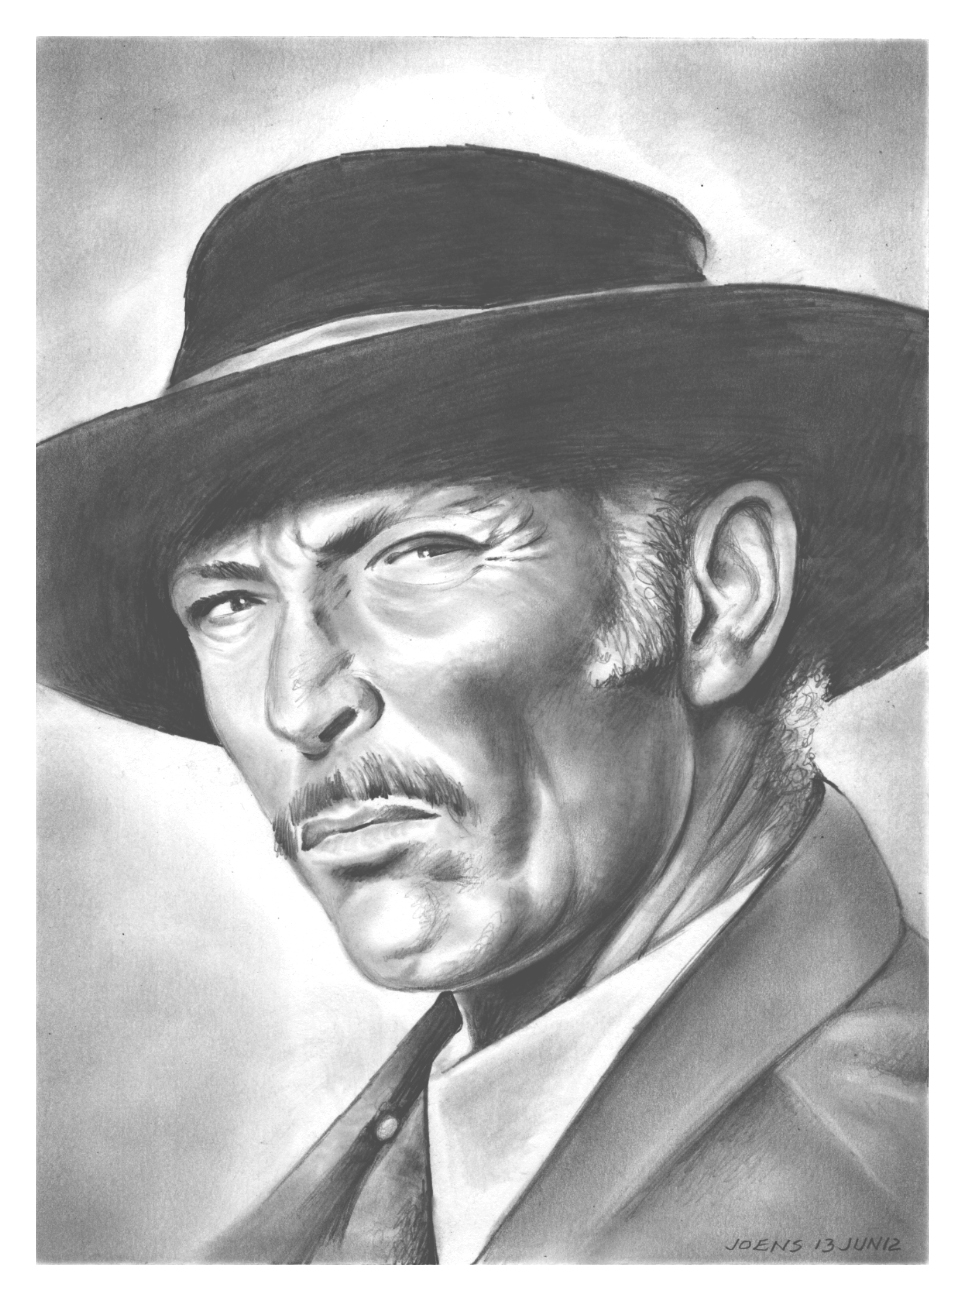 Lee Van Cleef by gregchapin on DeviantArt